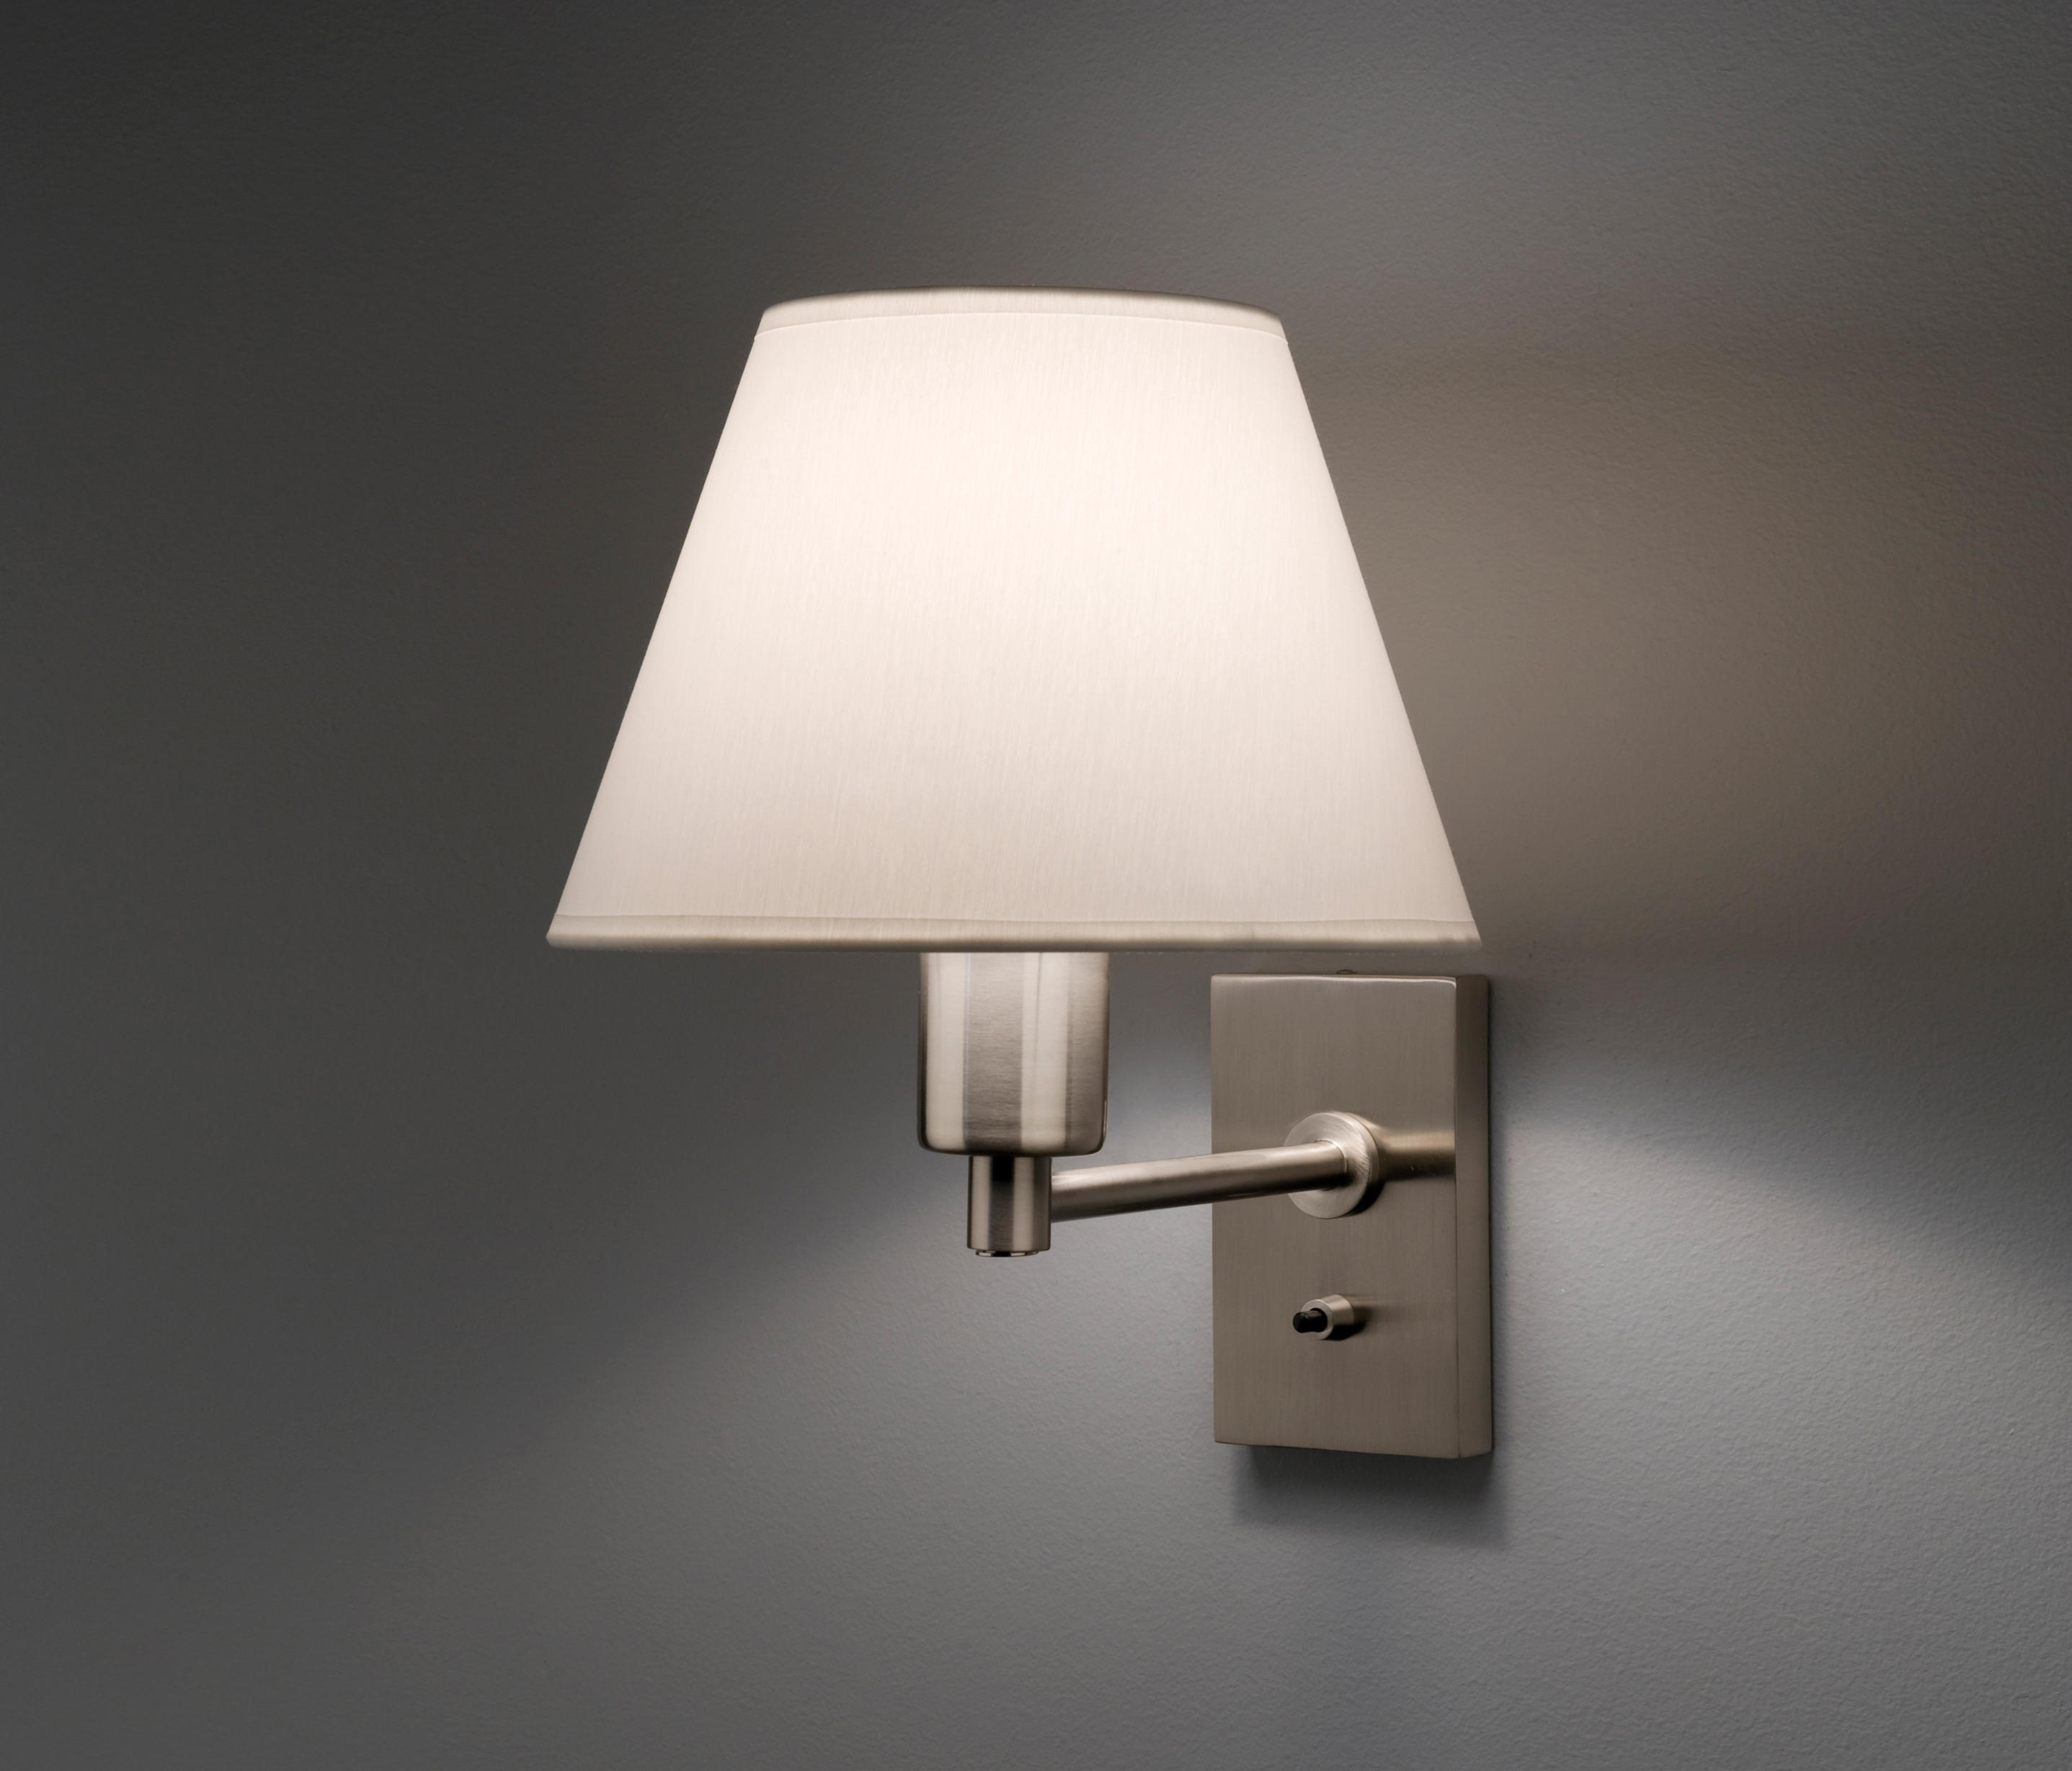 Hansen collection 1148 wall lamp wall lights from metalarte hansen collection 1148 wall lamp by metalarte wall lights aloadofball Images